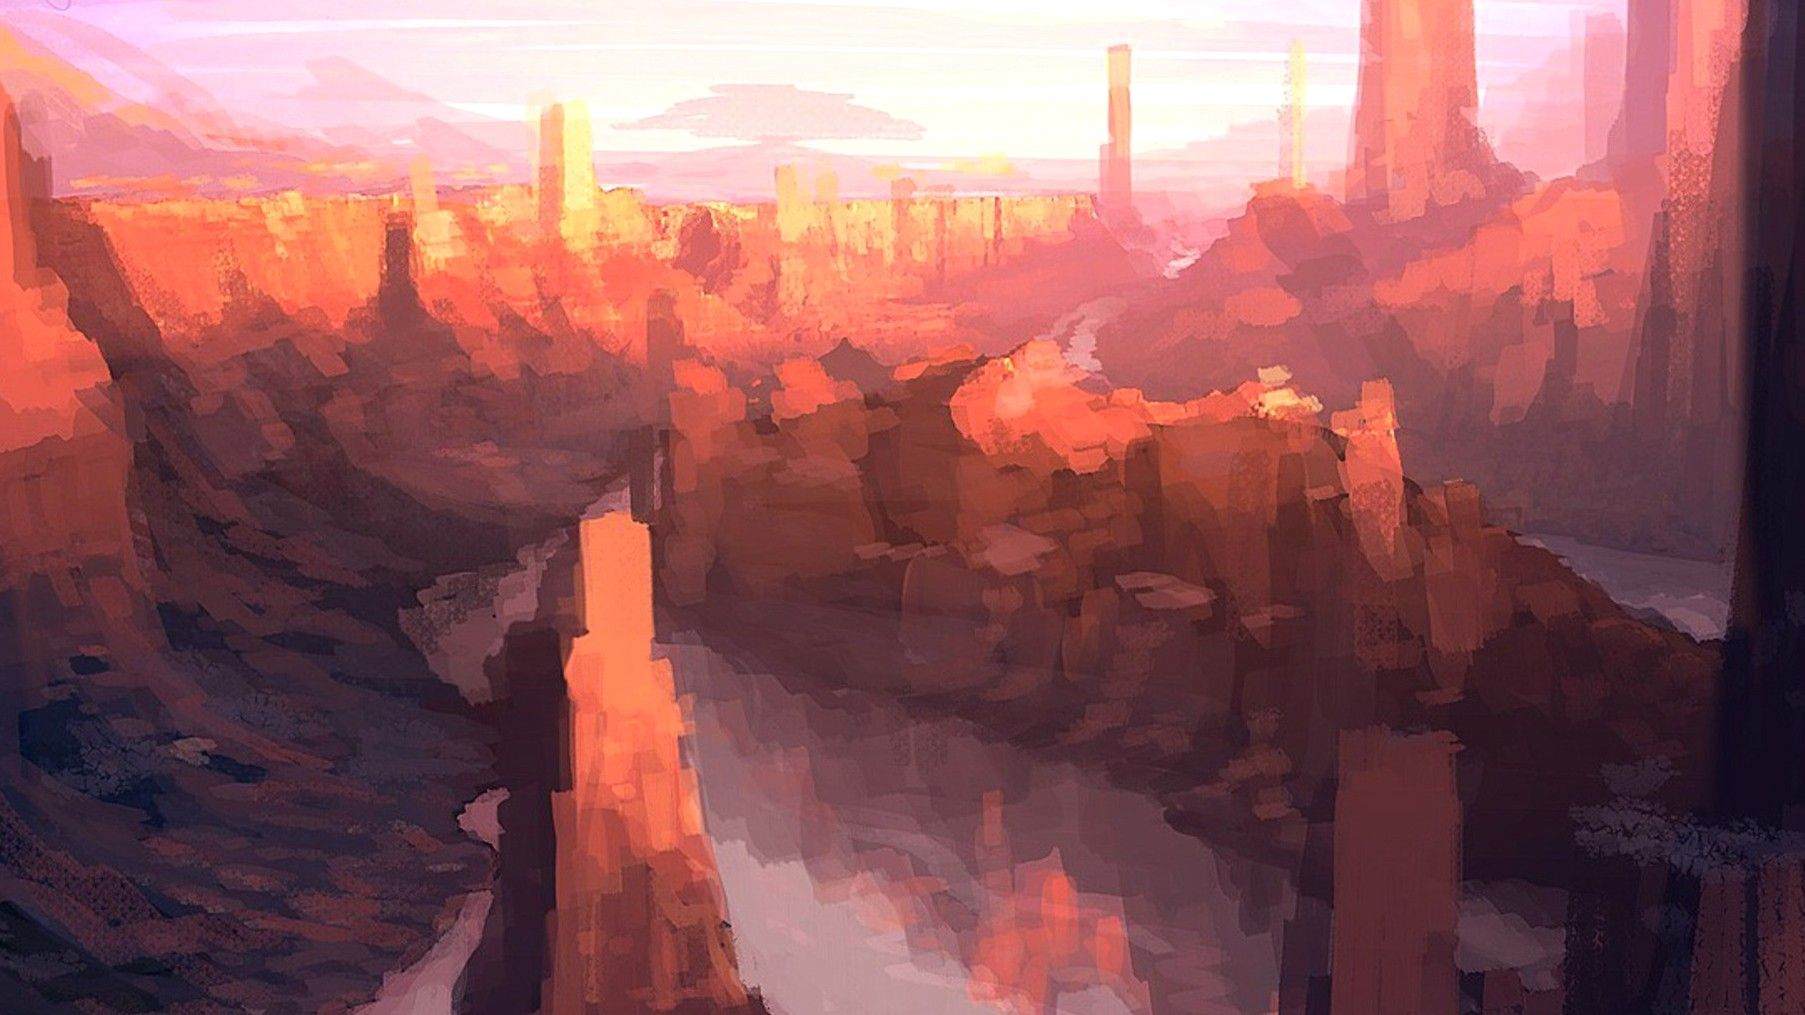 1805x1015 Paintings, Canyon, Real, Scenic, Digital, Art, Concept ...